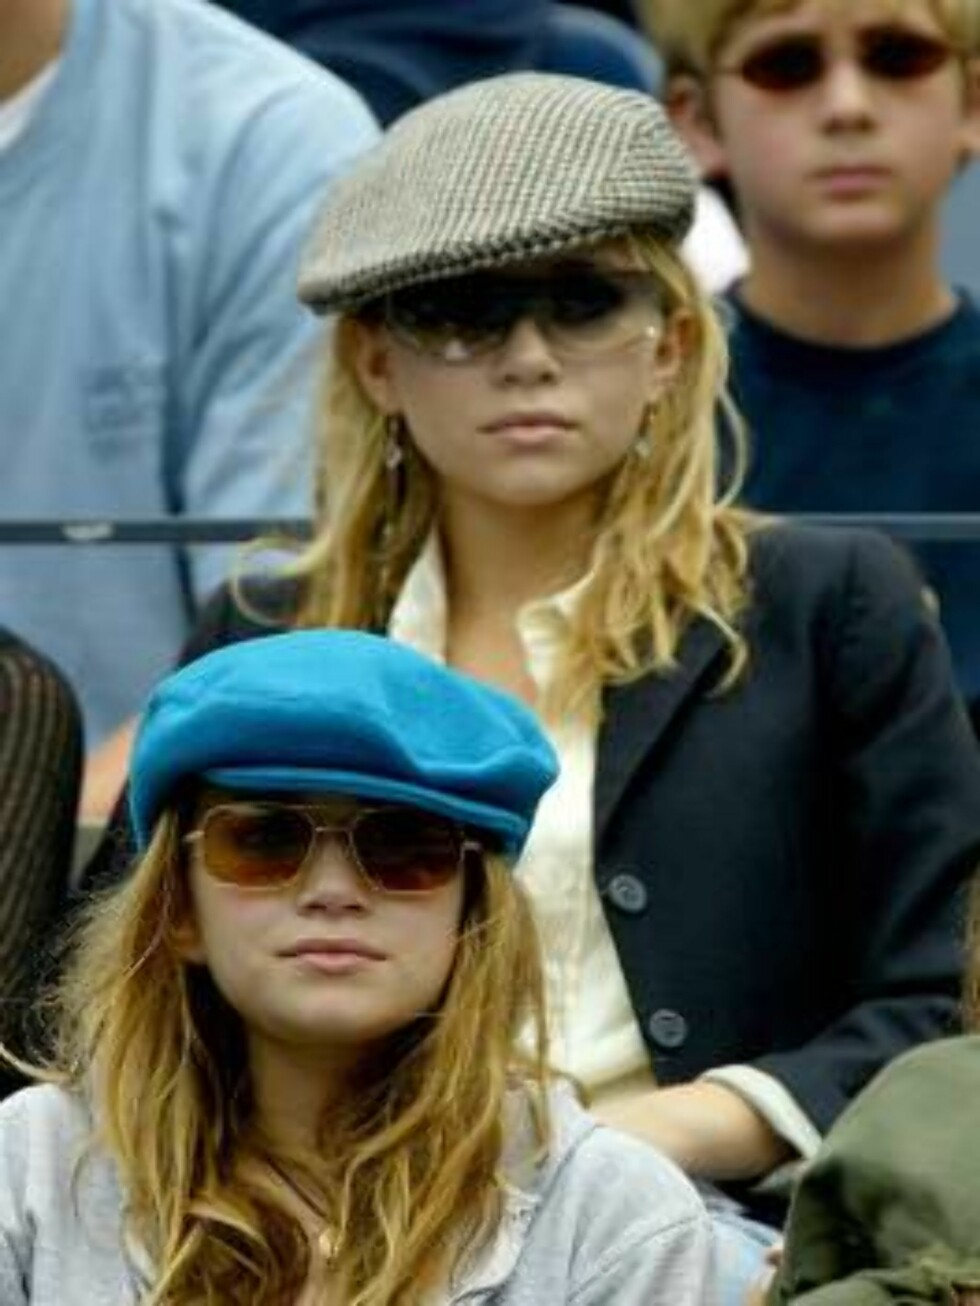 FLUSHING, NEW YORK - AUGUST 29: Mary Kate and Ashley Olson watch James Blake play Sargis Sargsian during the US Open August 29, 2003 at the USTA National Tennis Center,  Flushing Meadows Corona Park, in Flushing, New York. (Photo by Ezra Shaw/Getty Images Foto: All Over Press